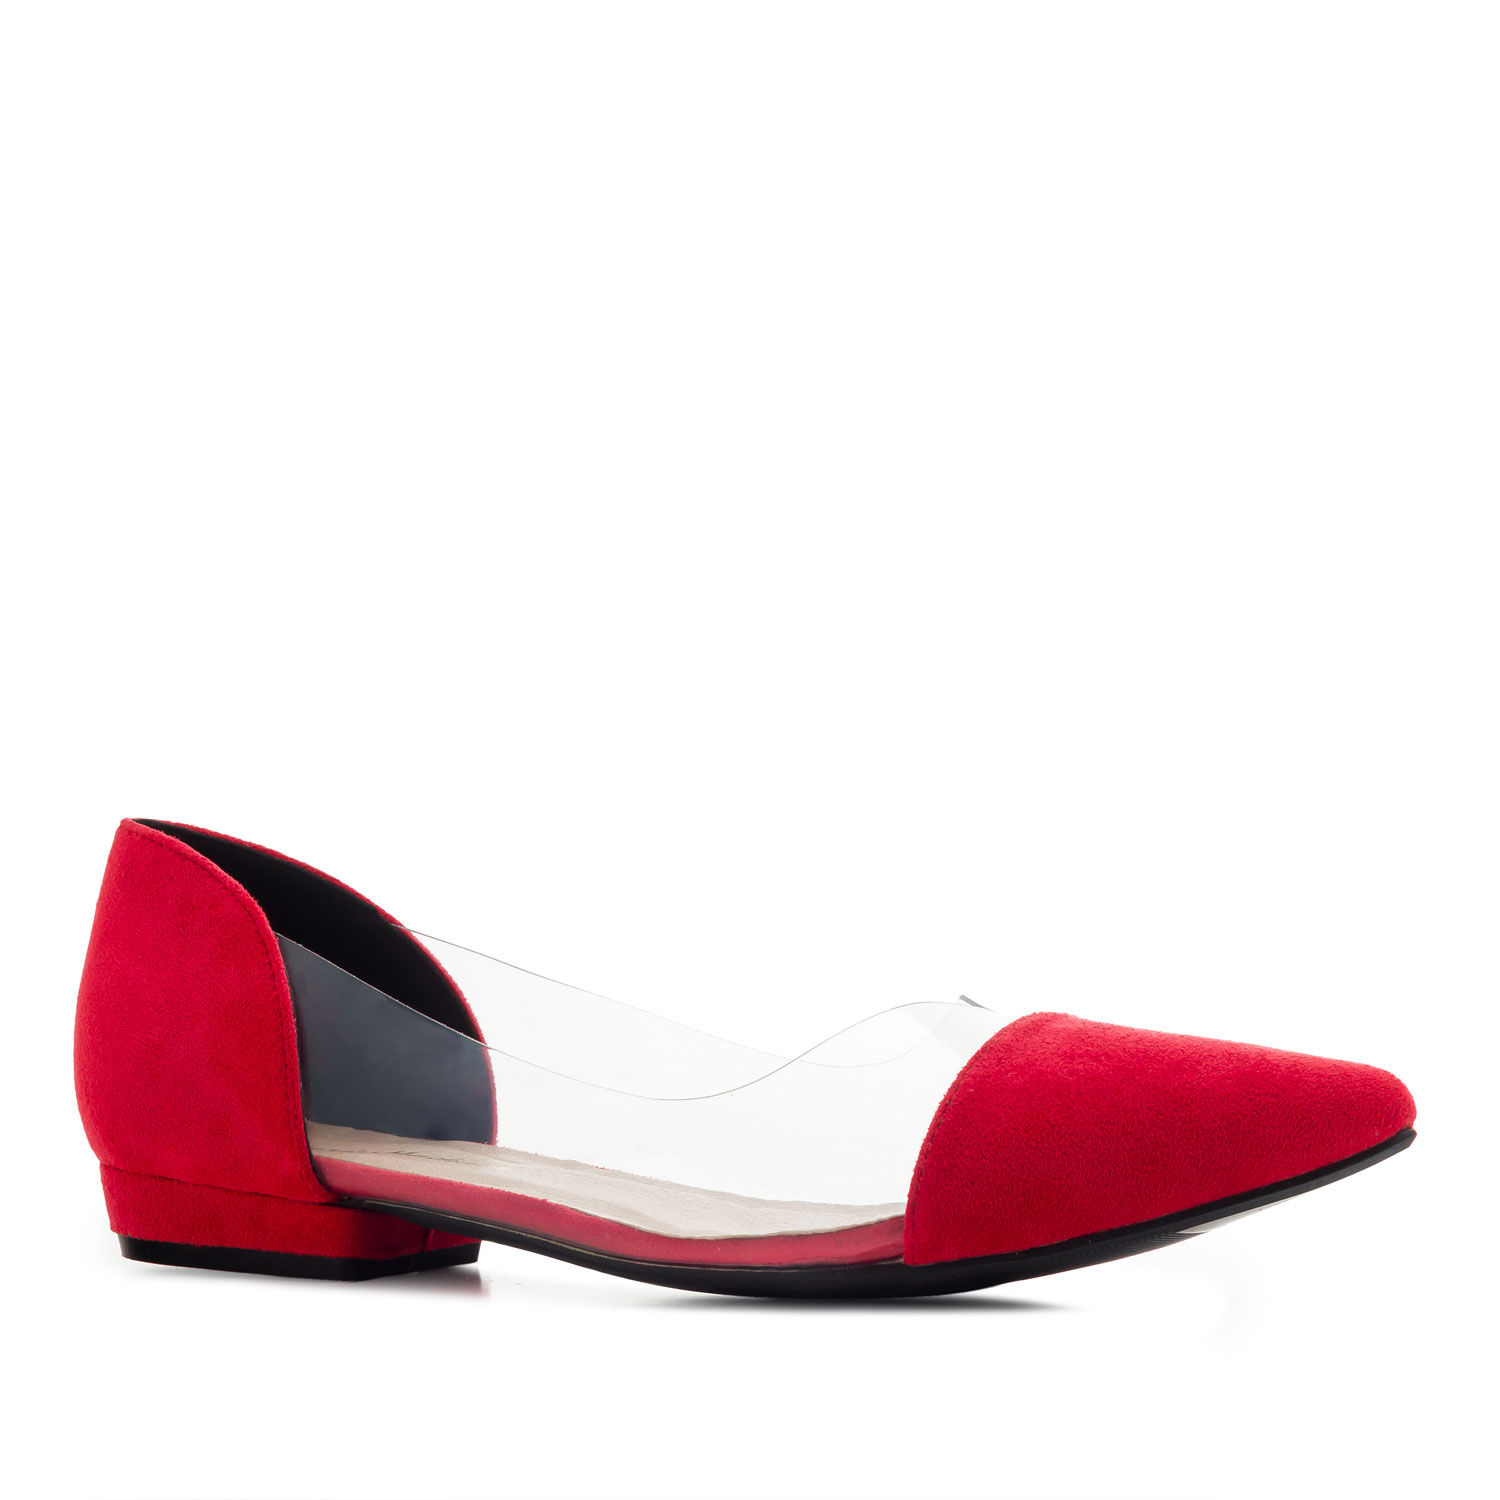 Vinyl Ballet Flats in Red Suede